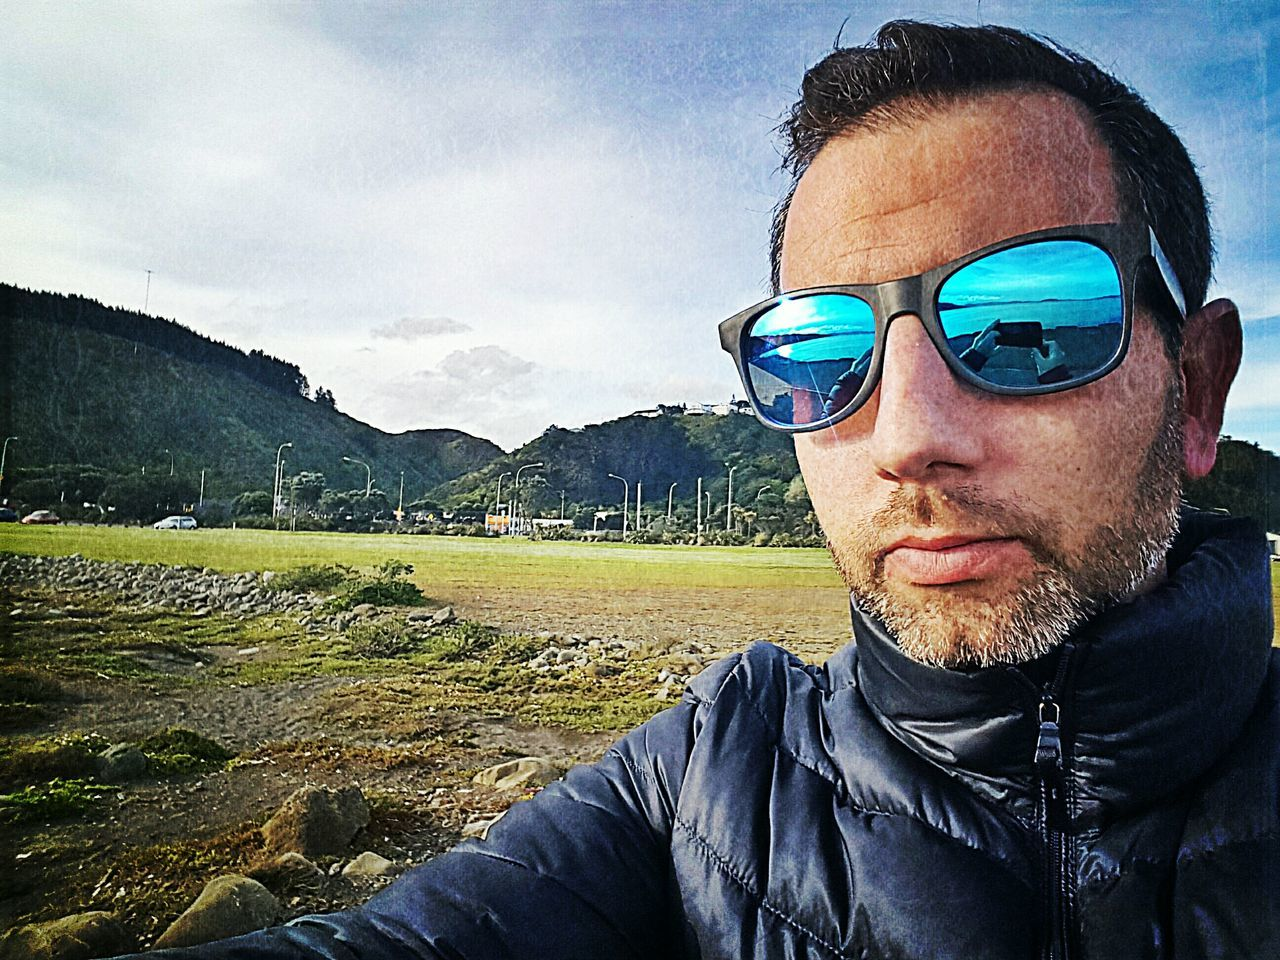 sunglasses, one person, mid adult, real people, sky, day, headshot, outdoors, portrait, landscape, nature, mountain, lifestyles, men, beauty in nature, one man only, adult, people